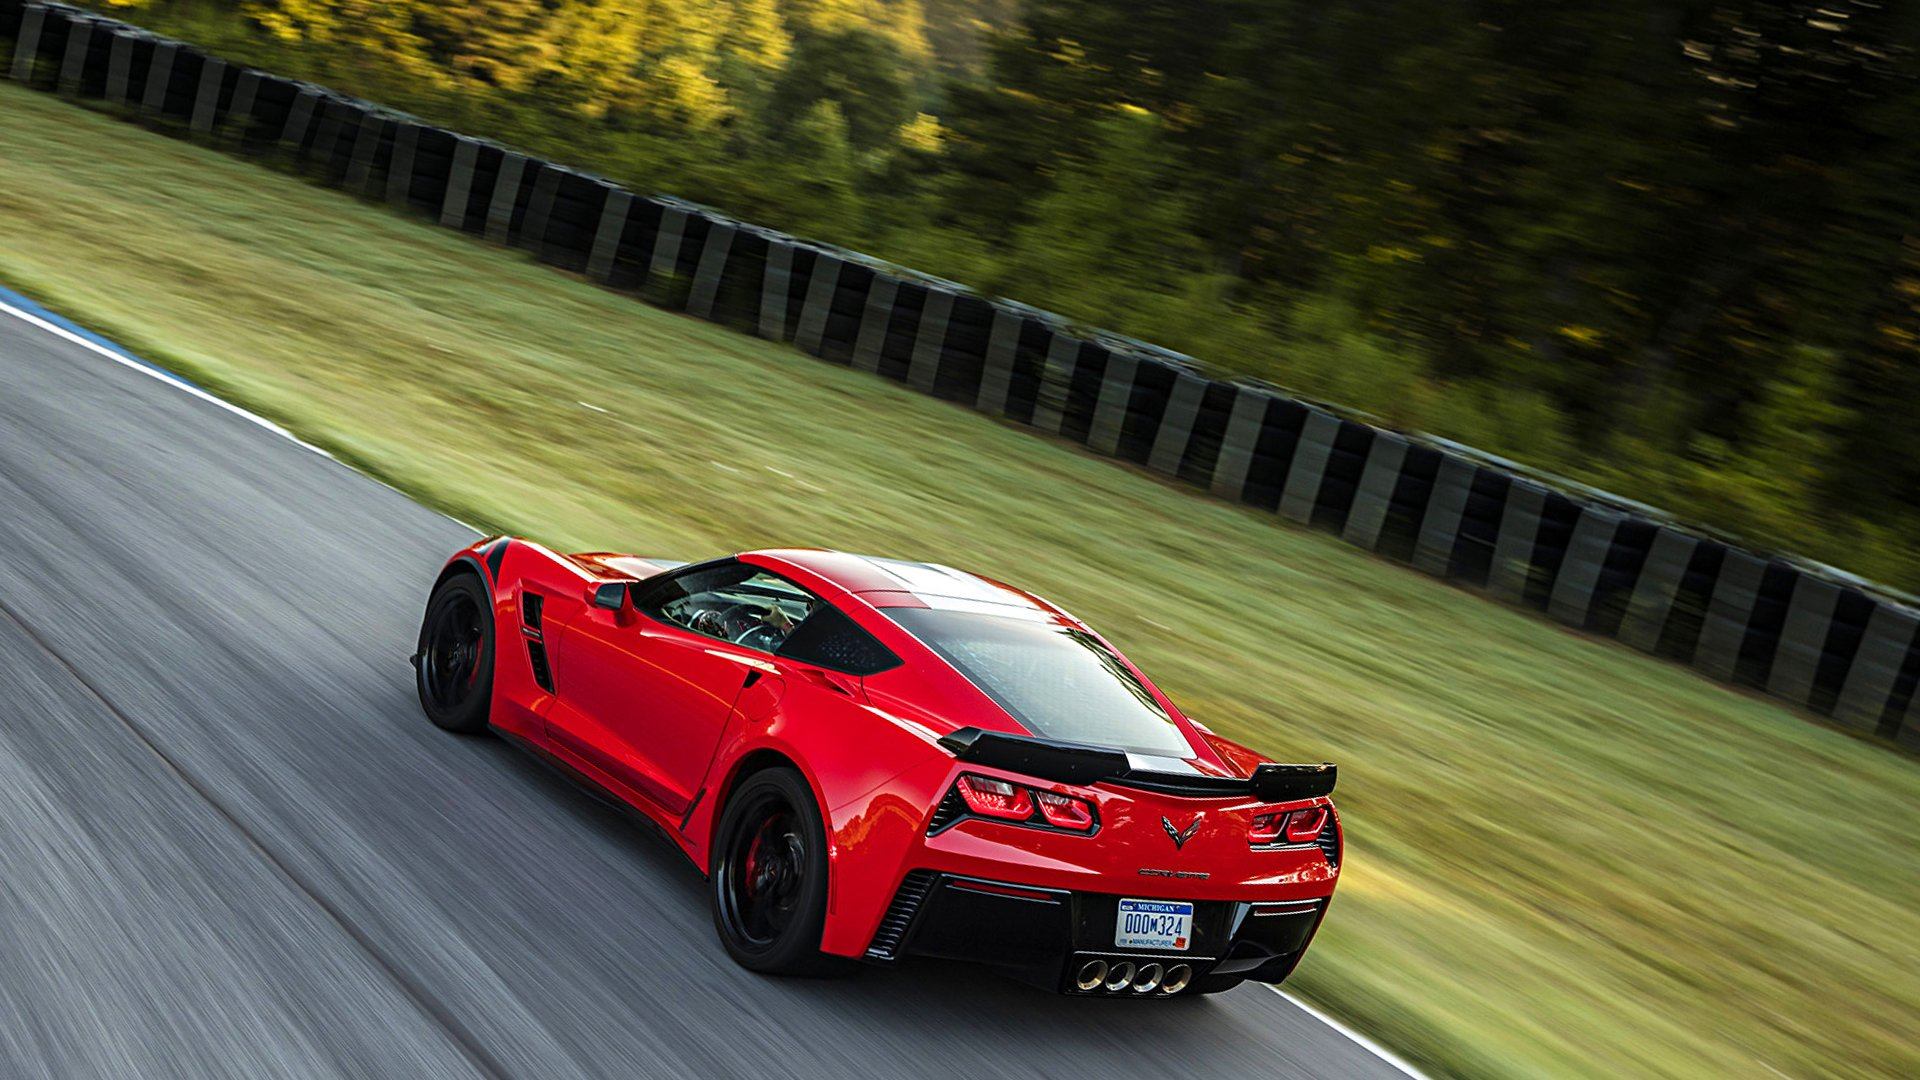 New 2019 Chevrolet Corvette Release Date